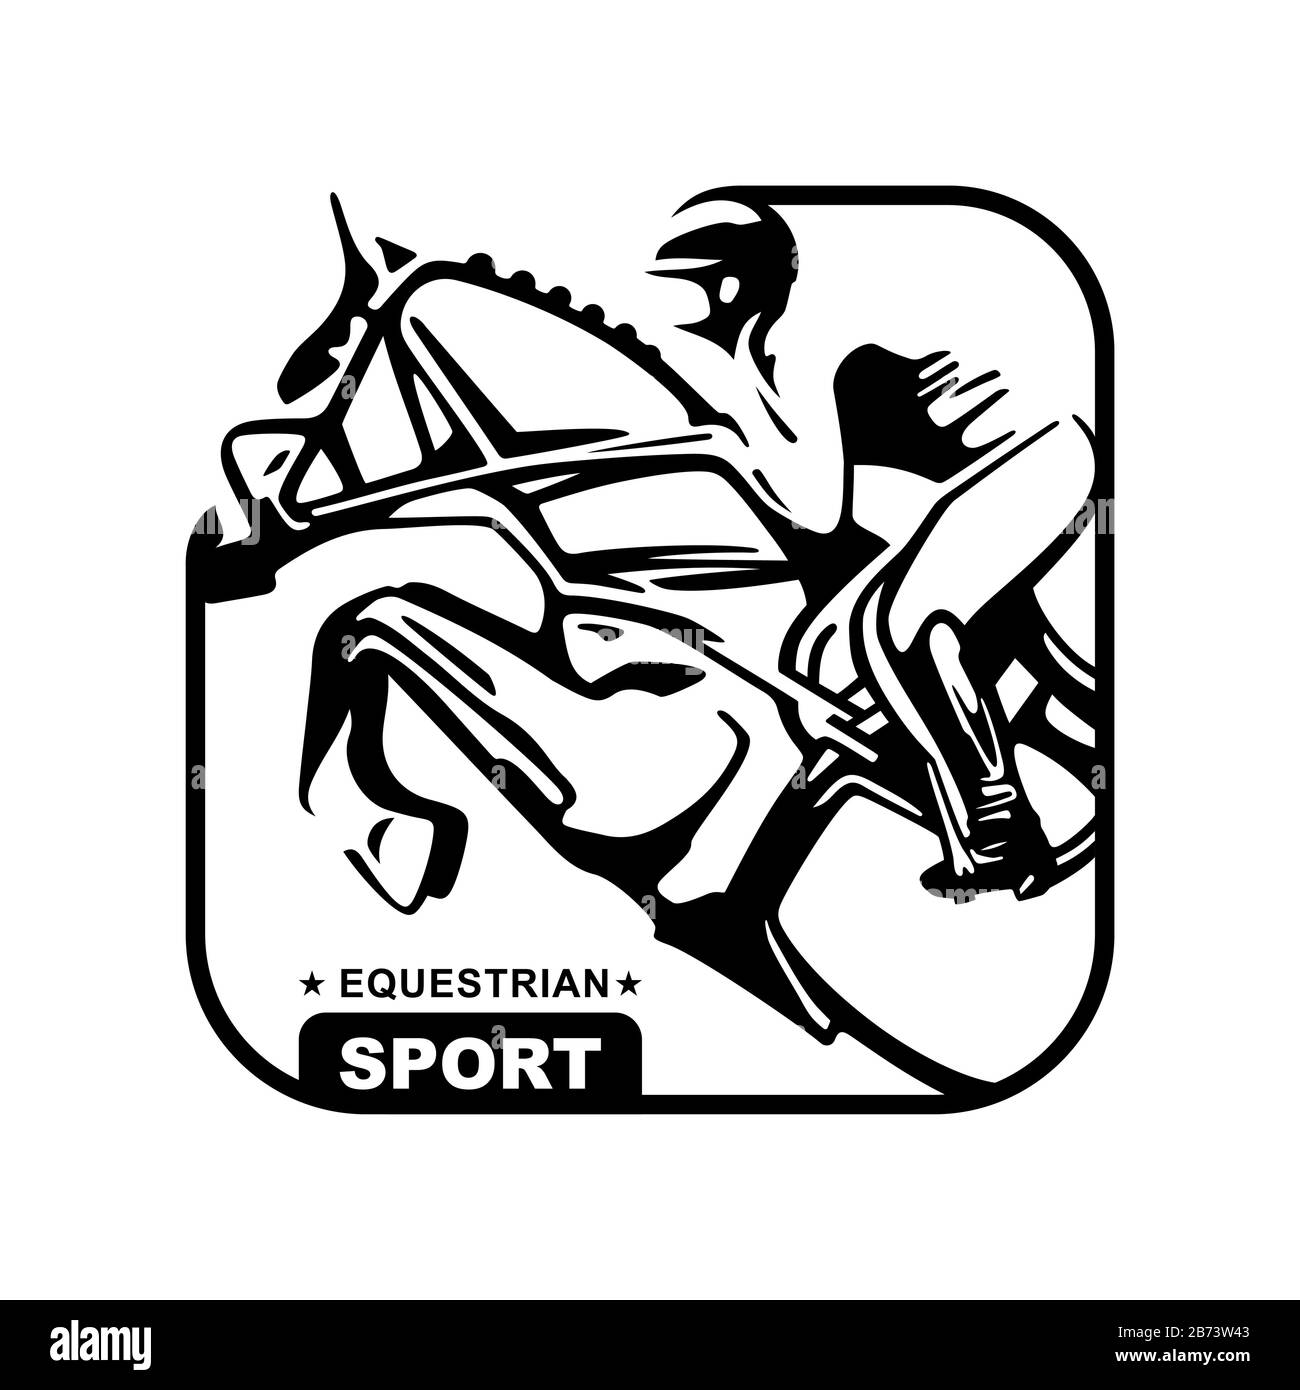 Logo Design Icons Silhouette Of Racing Horse With Jockey Equestrian Sport Poster Sport Jockey Riding Jumping Horse Vector Illustration Stock Vector Image Art Alamy